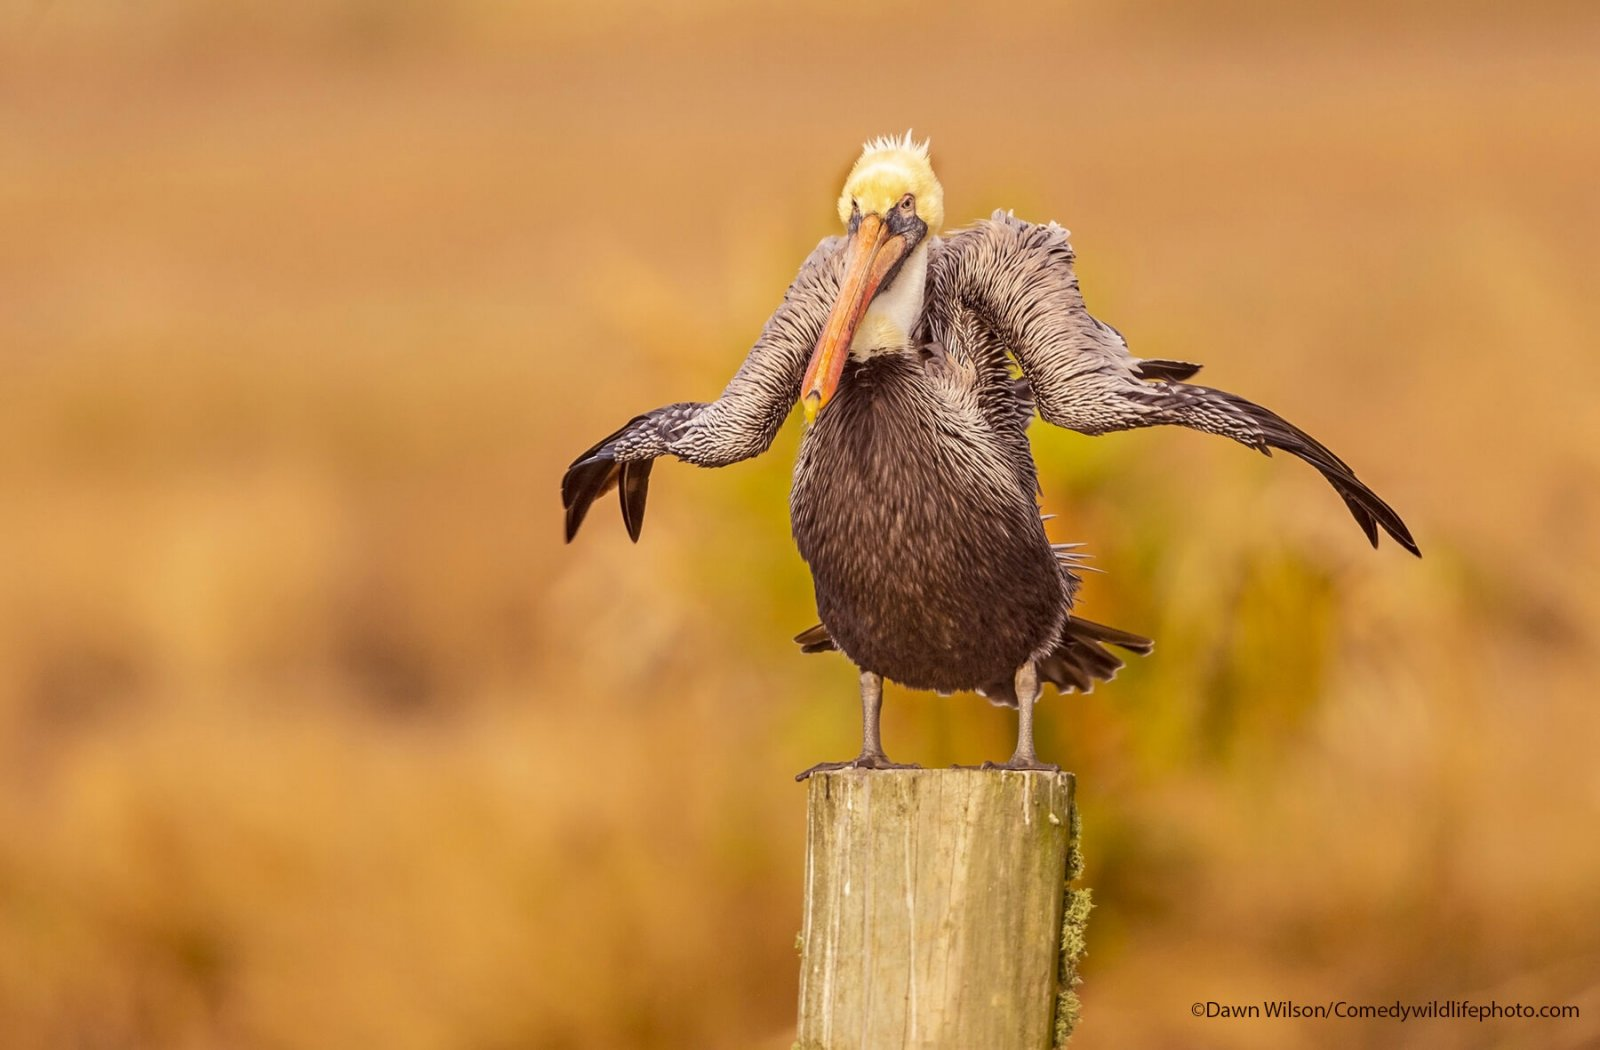 A pelican looks like it is shrugging while standing on a post.